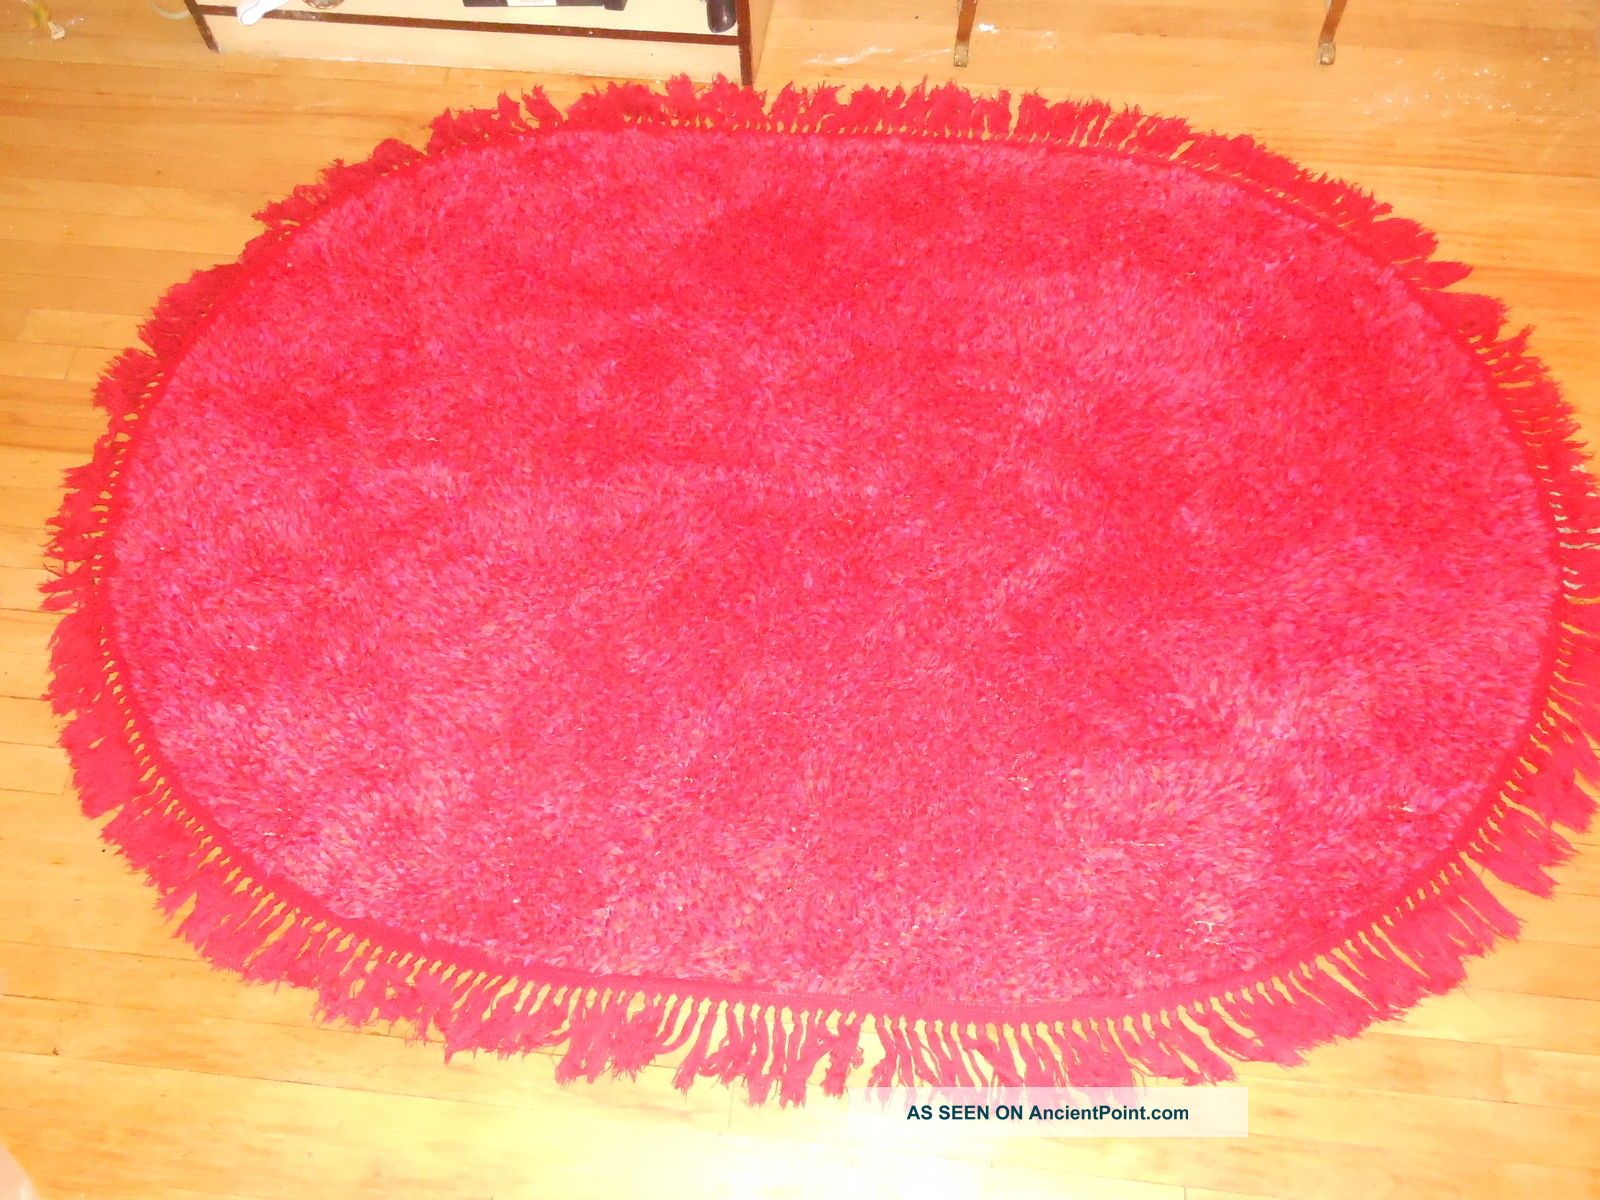 Rya Rug Red Oval 100% Cotton 4x6 Feet Mid Century Moderne Vintage Red Red Red Medium (4x6-6x9) photo